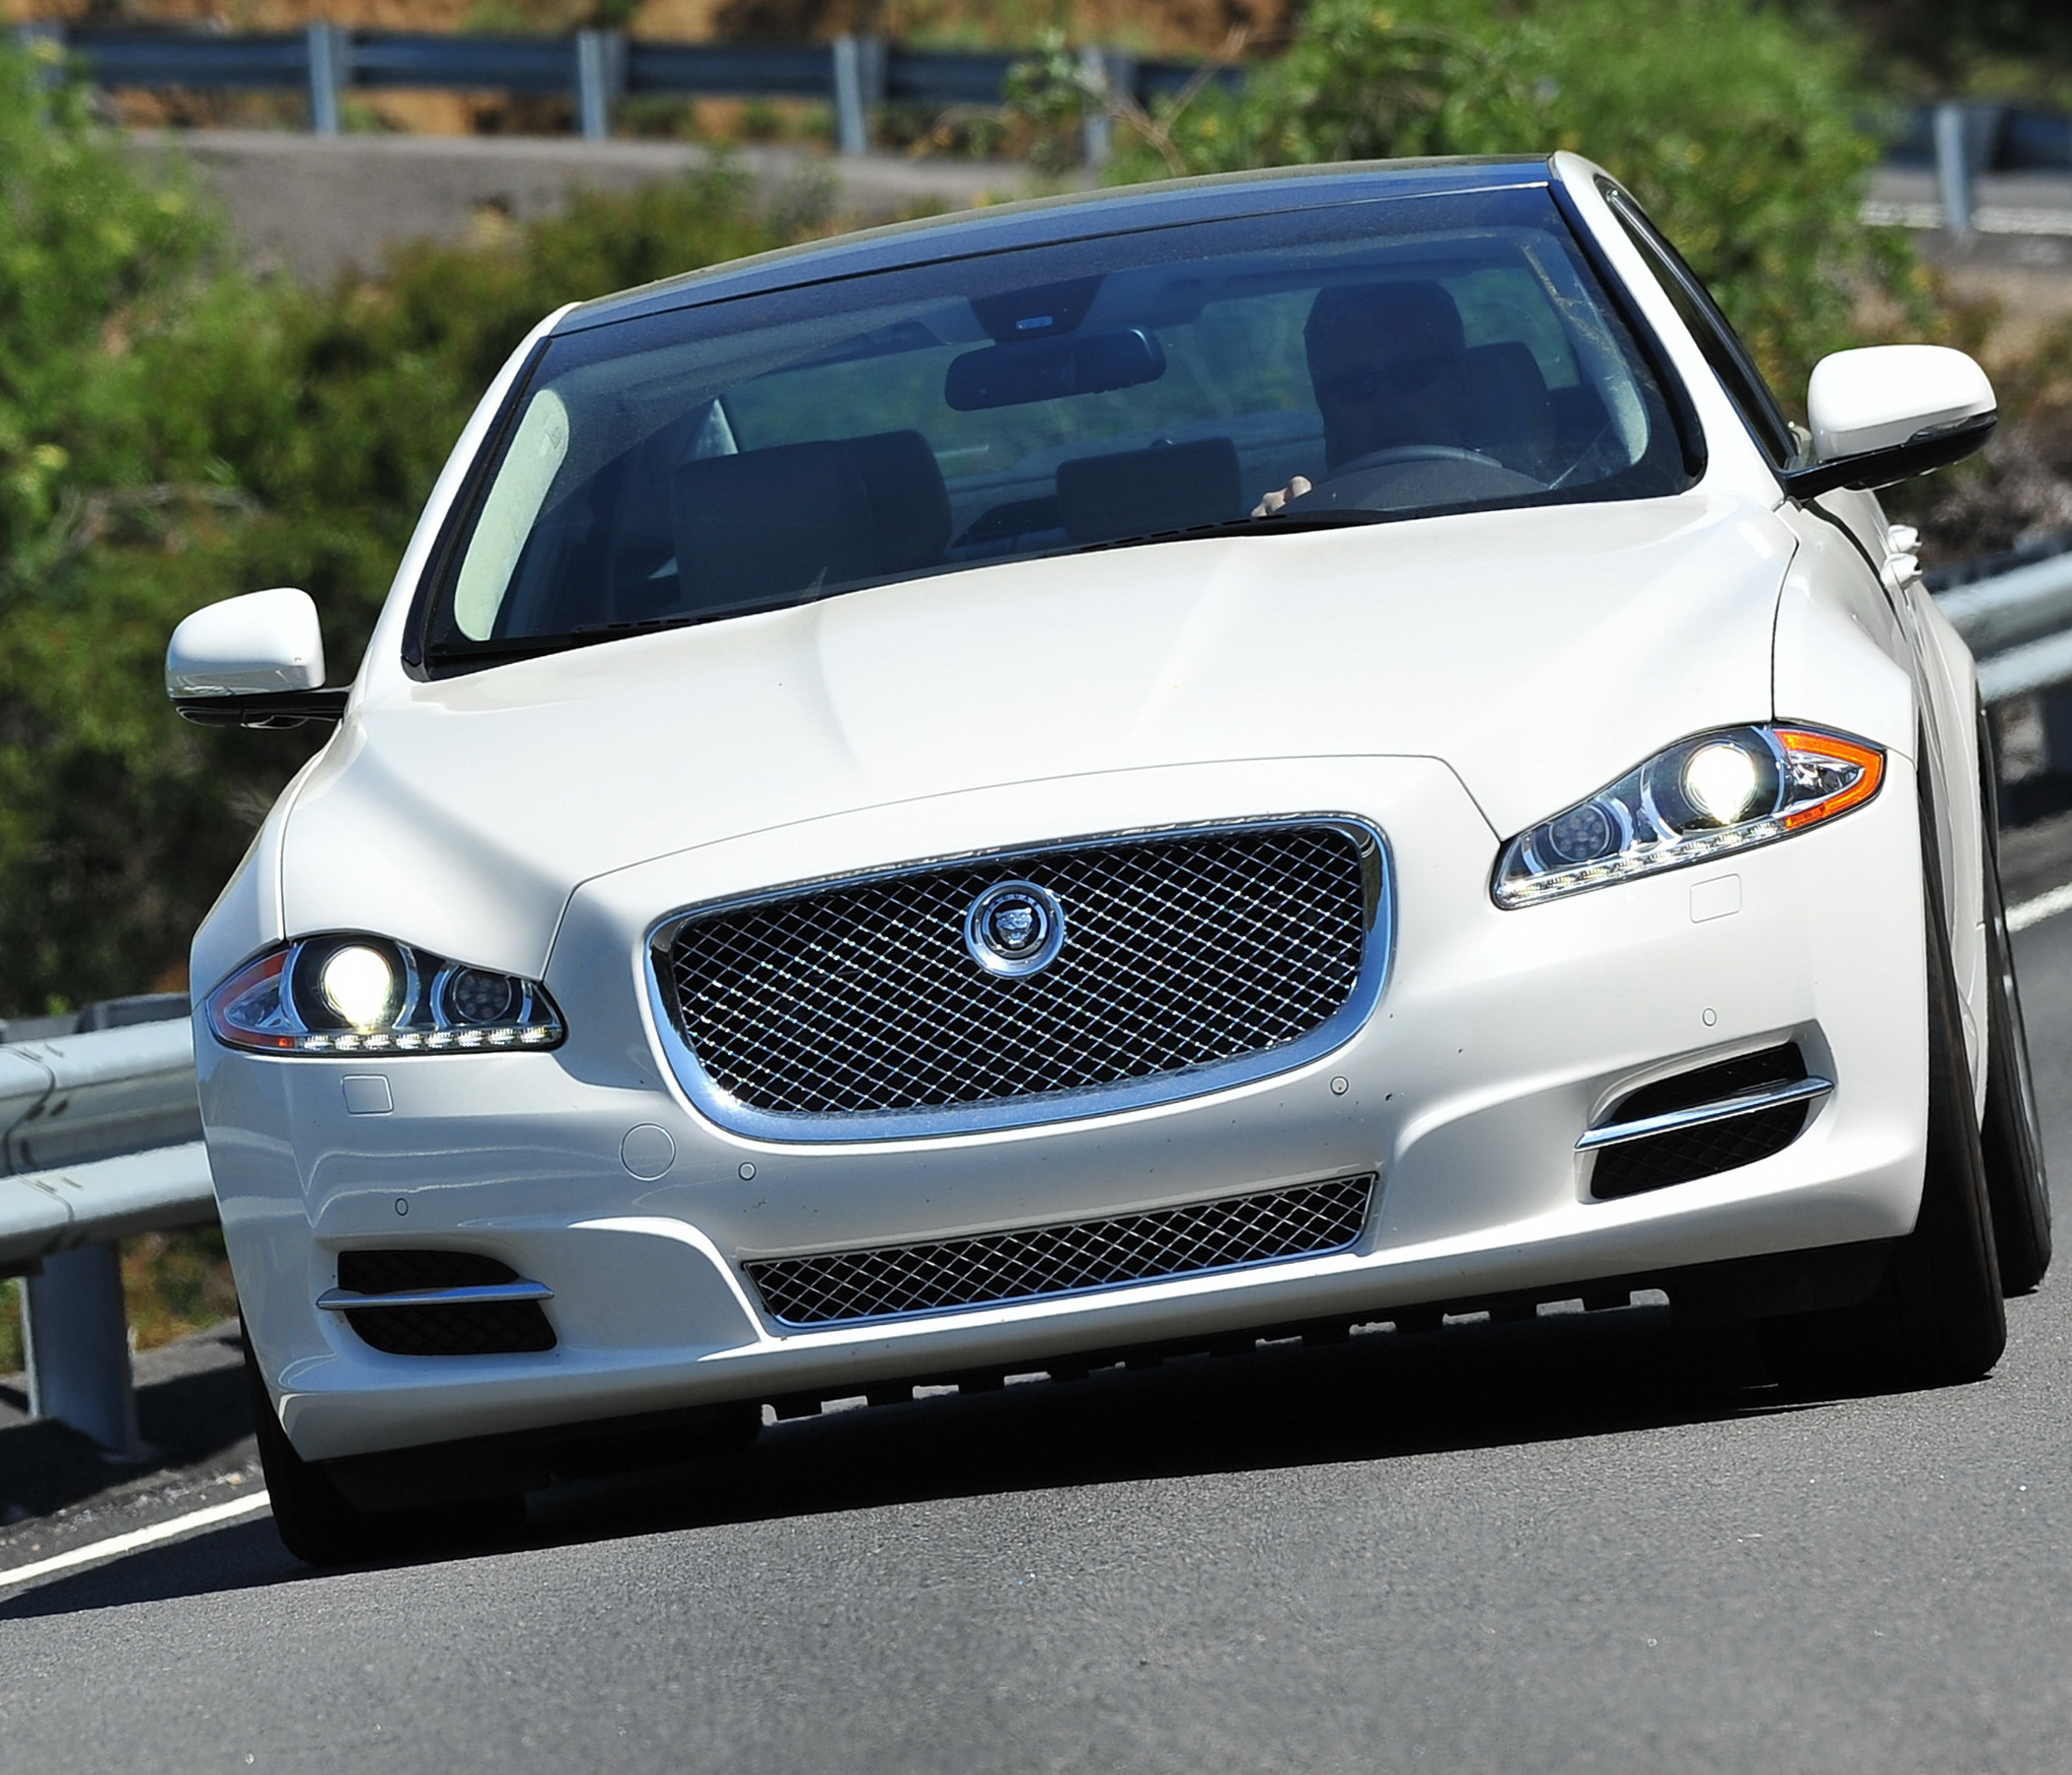 2010 Jaguar Coupe: 2011 Jaguar XJ -- The Iconic Sedan Is Reimagined